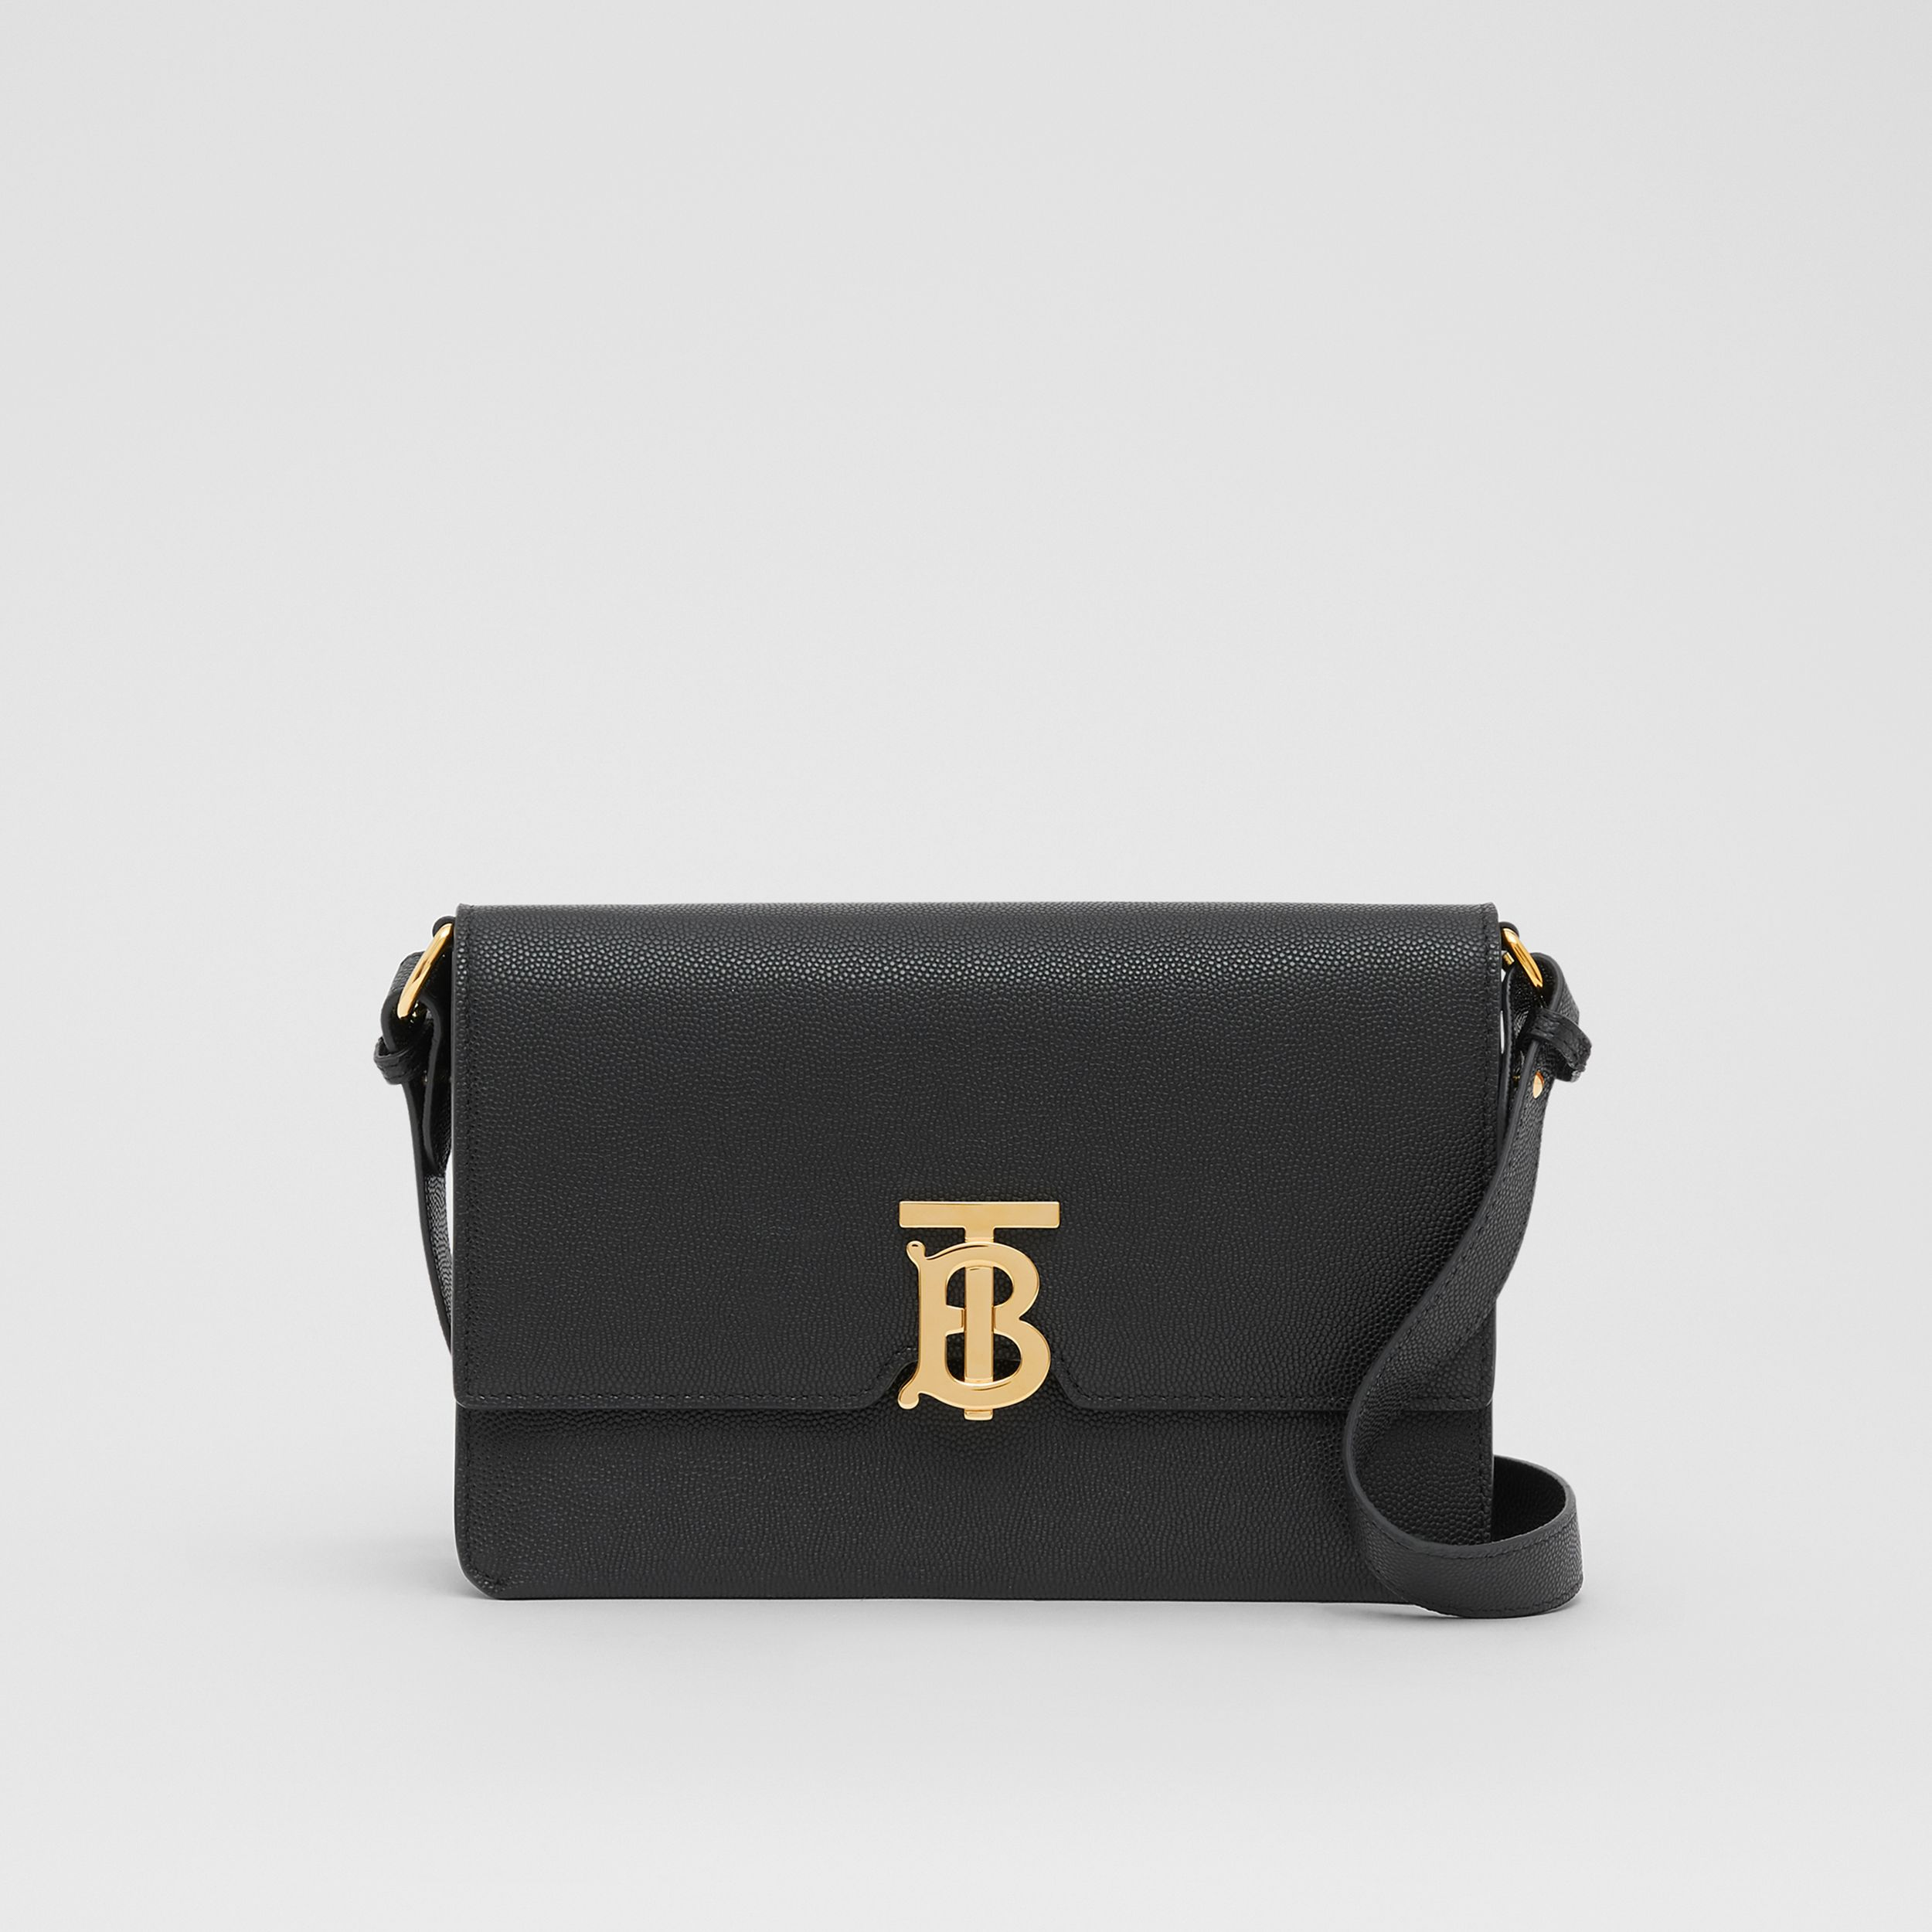 Small Monogram Motif Leather Crossbody Bag in Black - Women | Burberry Hong Kong S.A.R. - 1